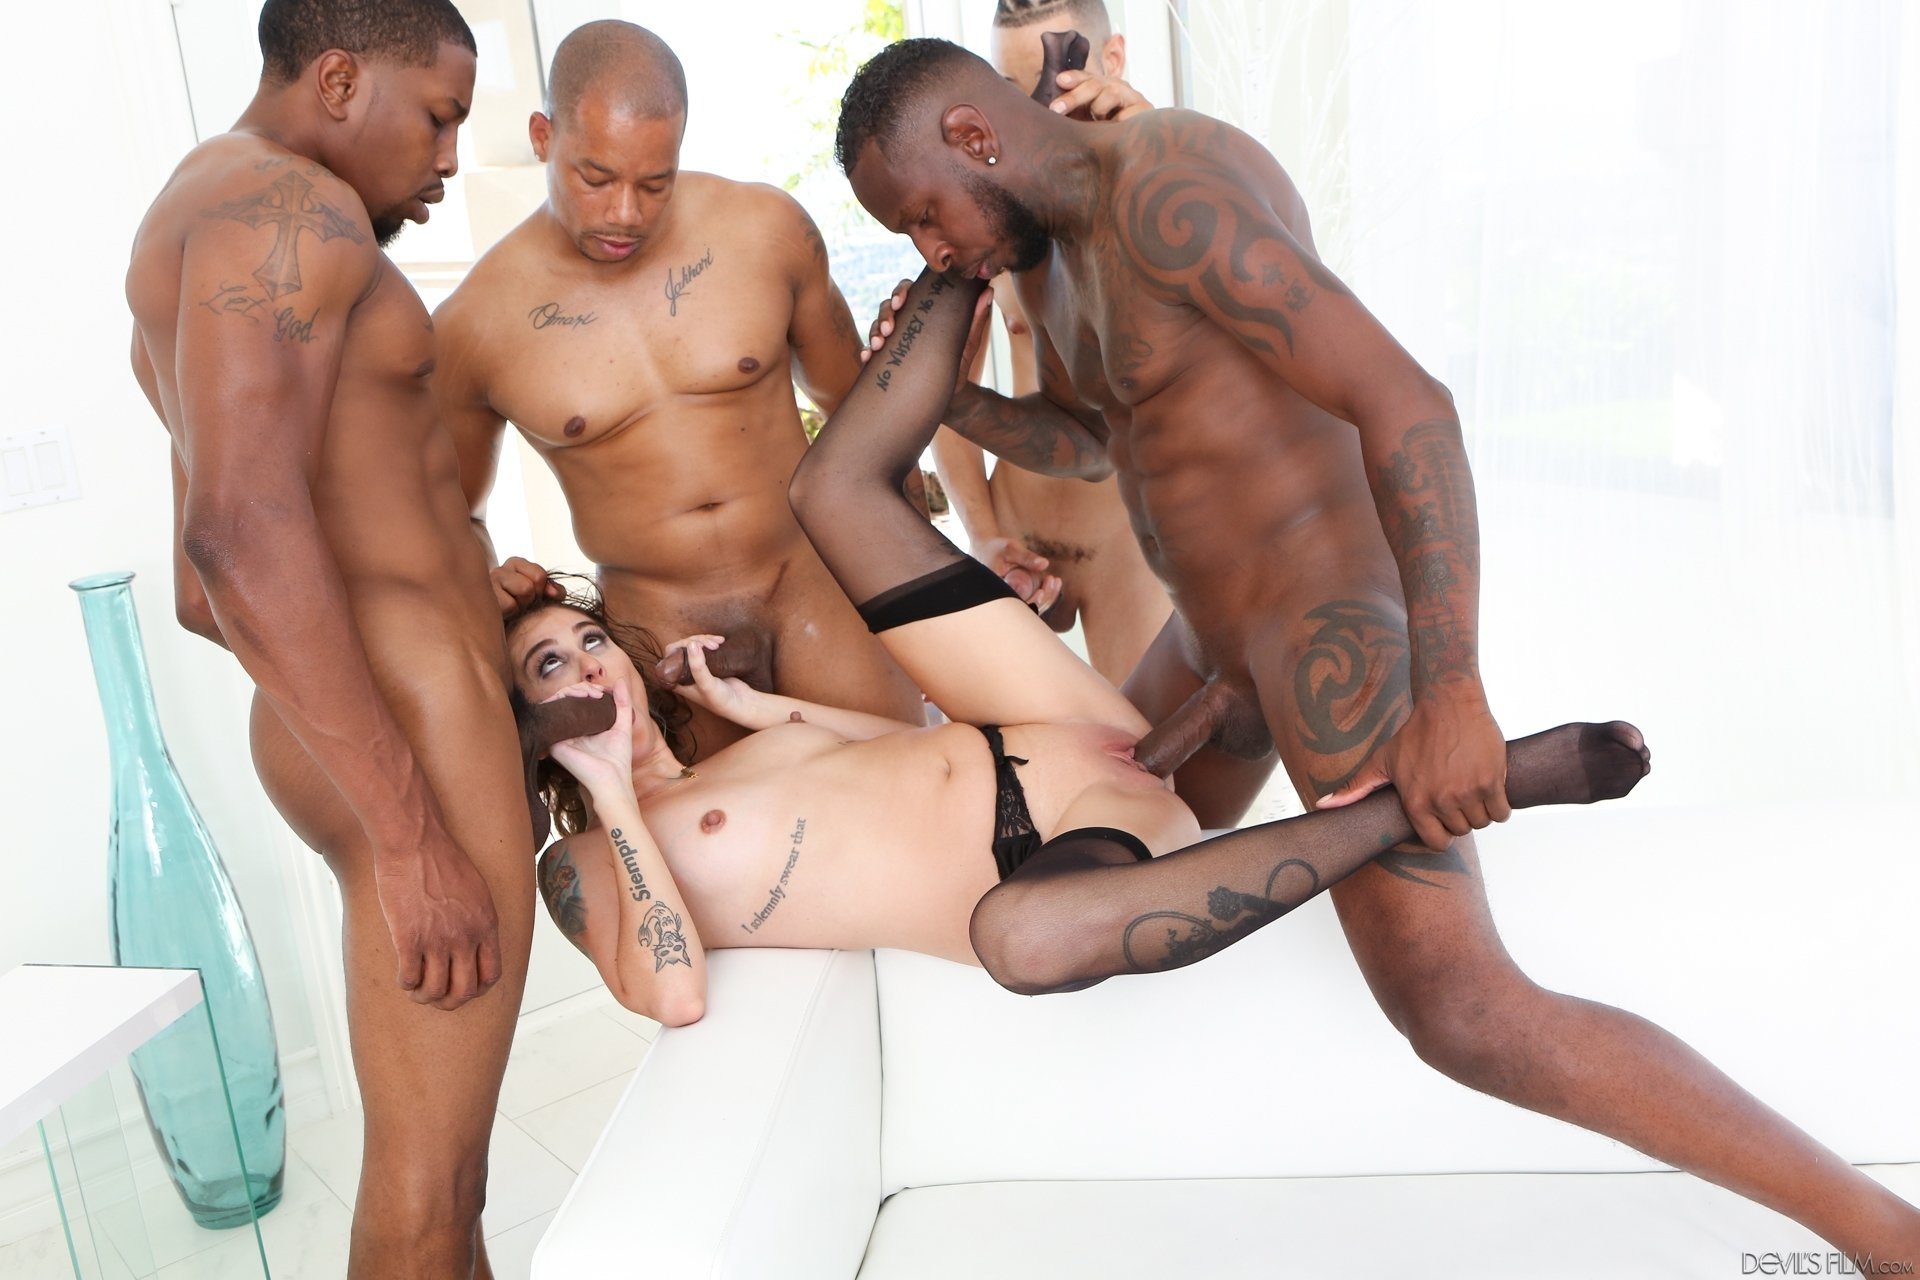 convent other play pleasure